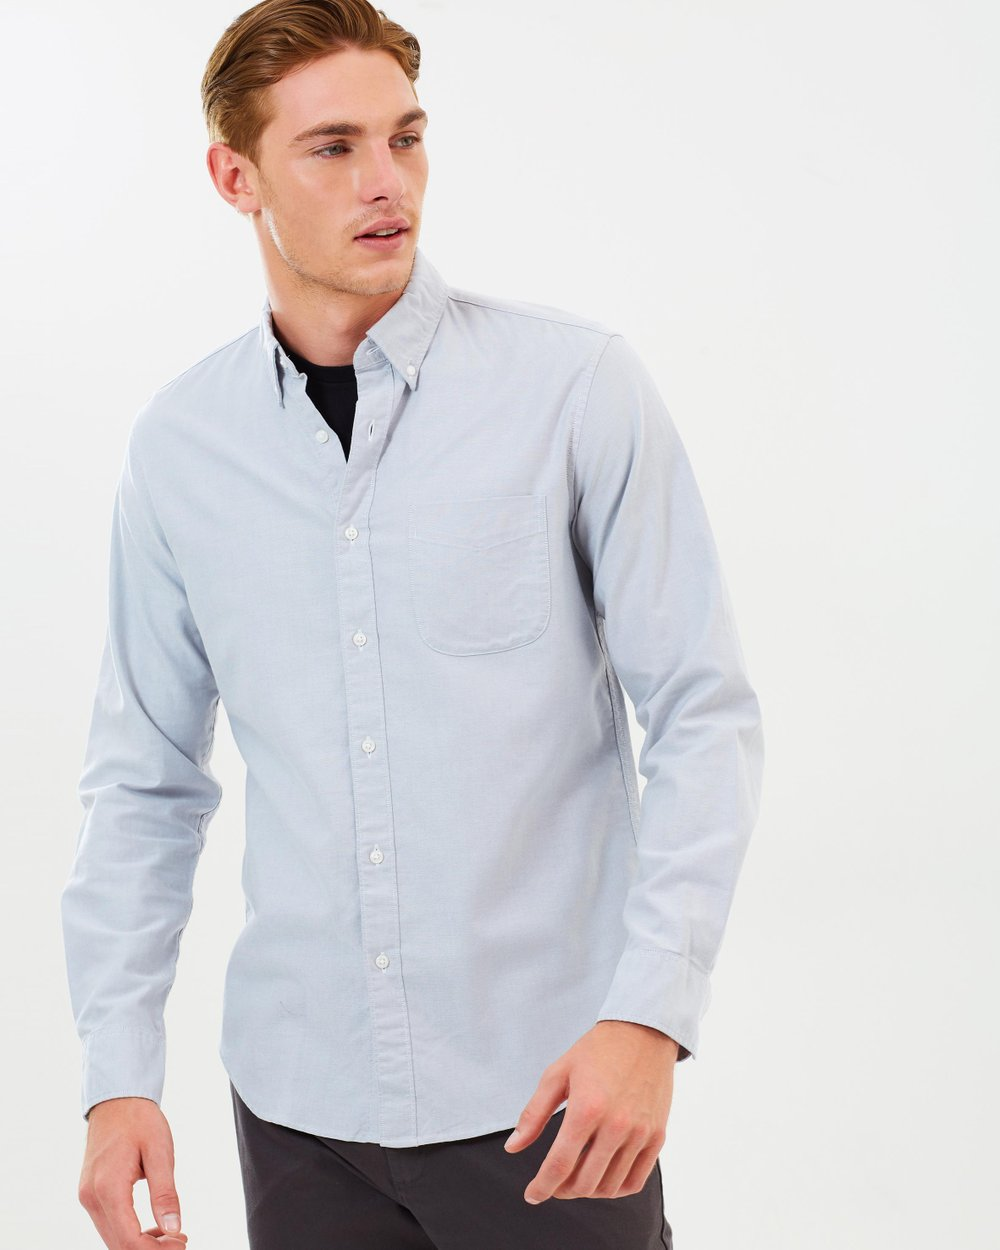 88aee834f5bf0 Slim Stretch American Pima Cotton Oxford Shirt by J.Crew Online ...